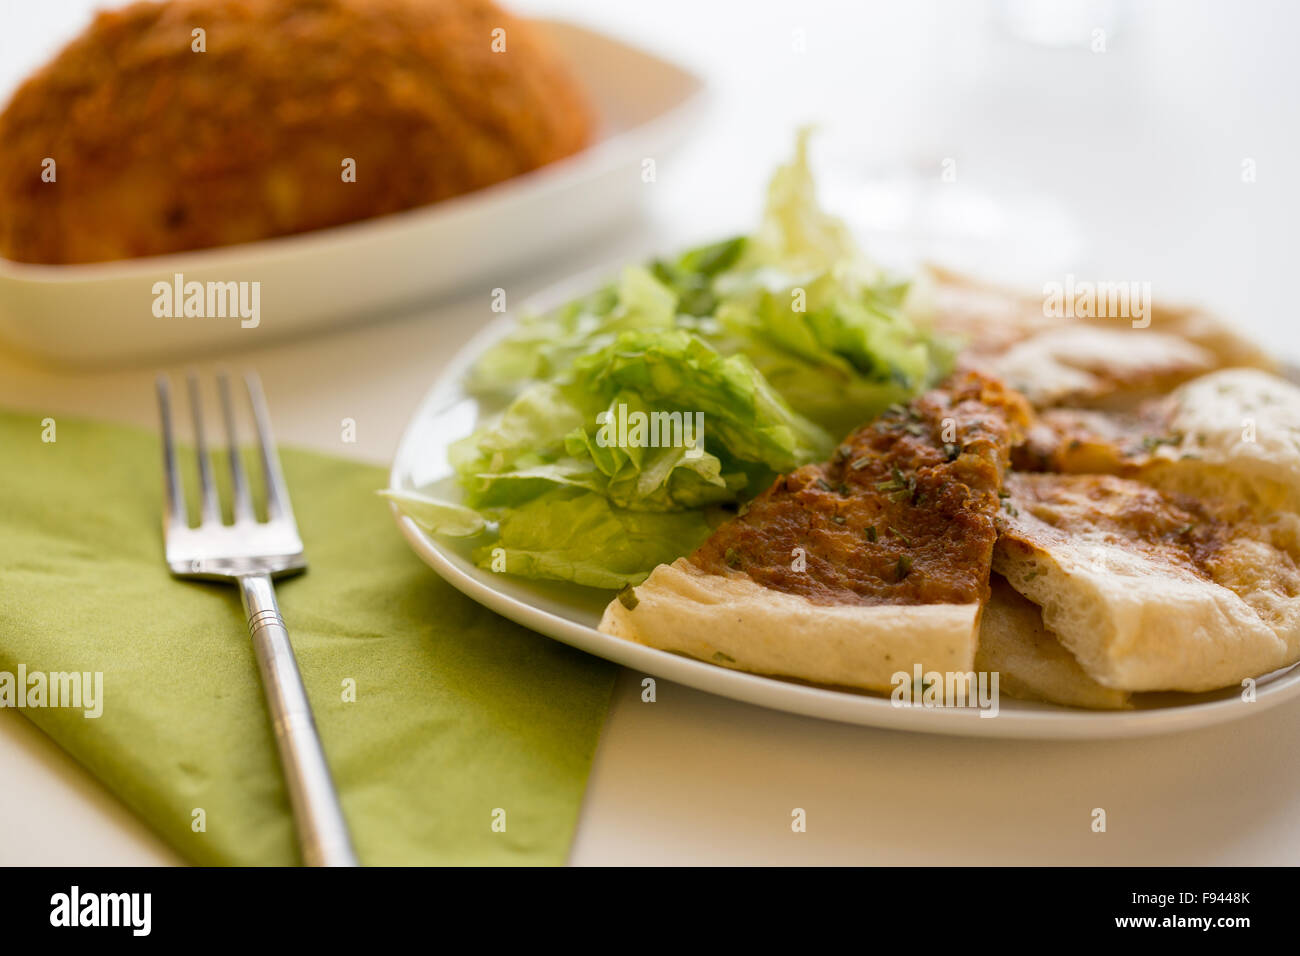 Indian curry naan bread on a plate with salad - Stock Image